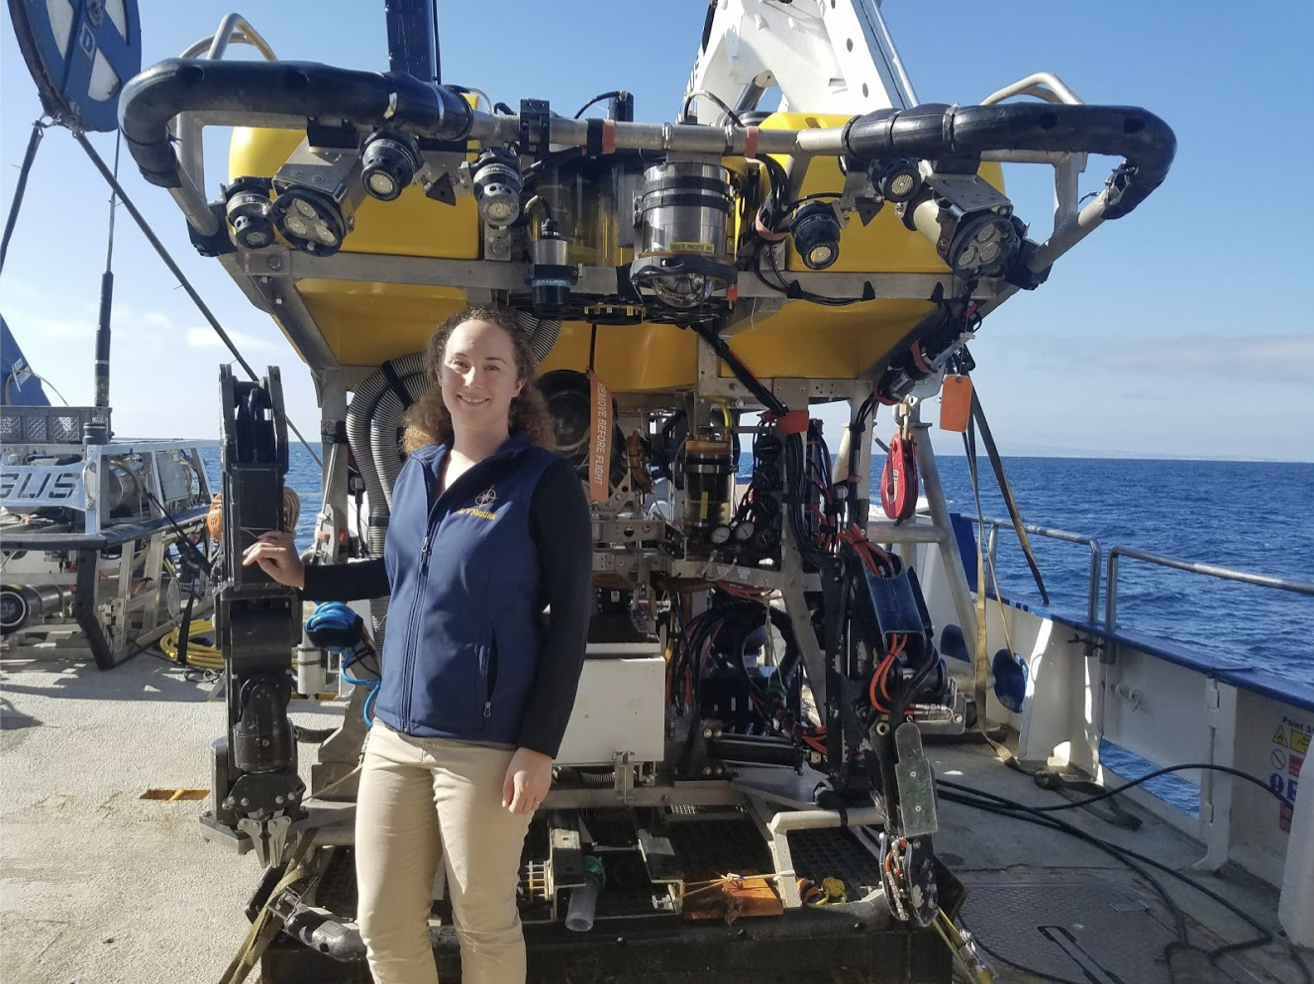 Me, during my professional internship with NOAA National Marine Sanctuaries. I am on-board the E/V Nautilus and standing in front of the ROV Hercules, which we used to explore the Channel Islands National Marine Sanctuary.